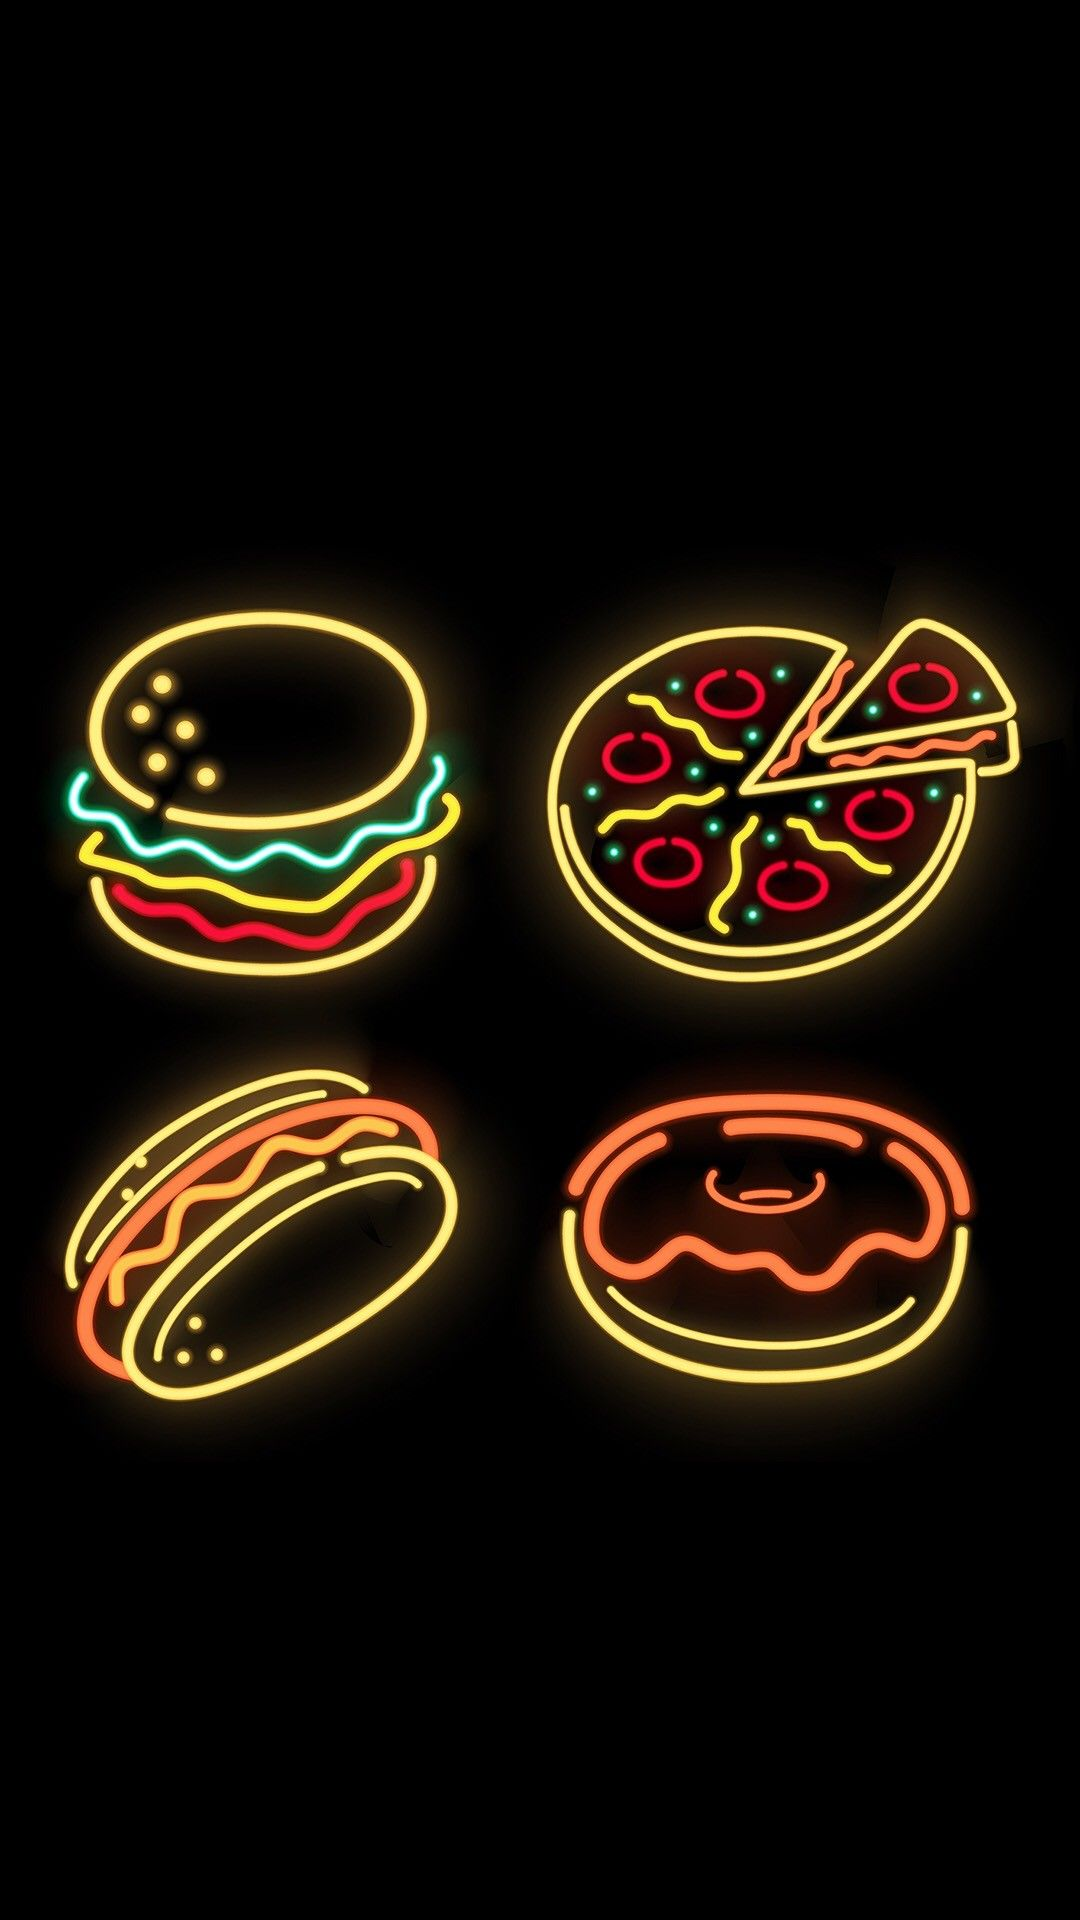 1080x1920 food wallpapers♡ in 2019 neon wallpaper, iphone